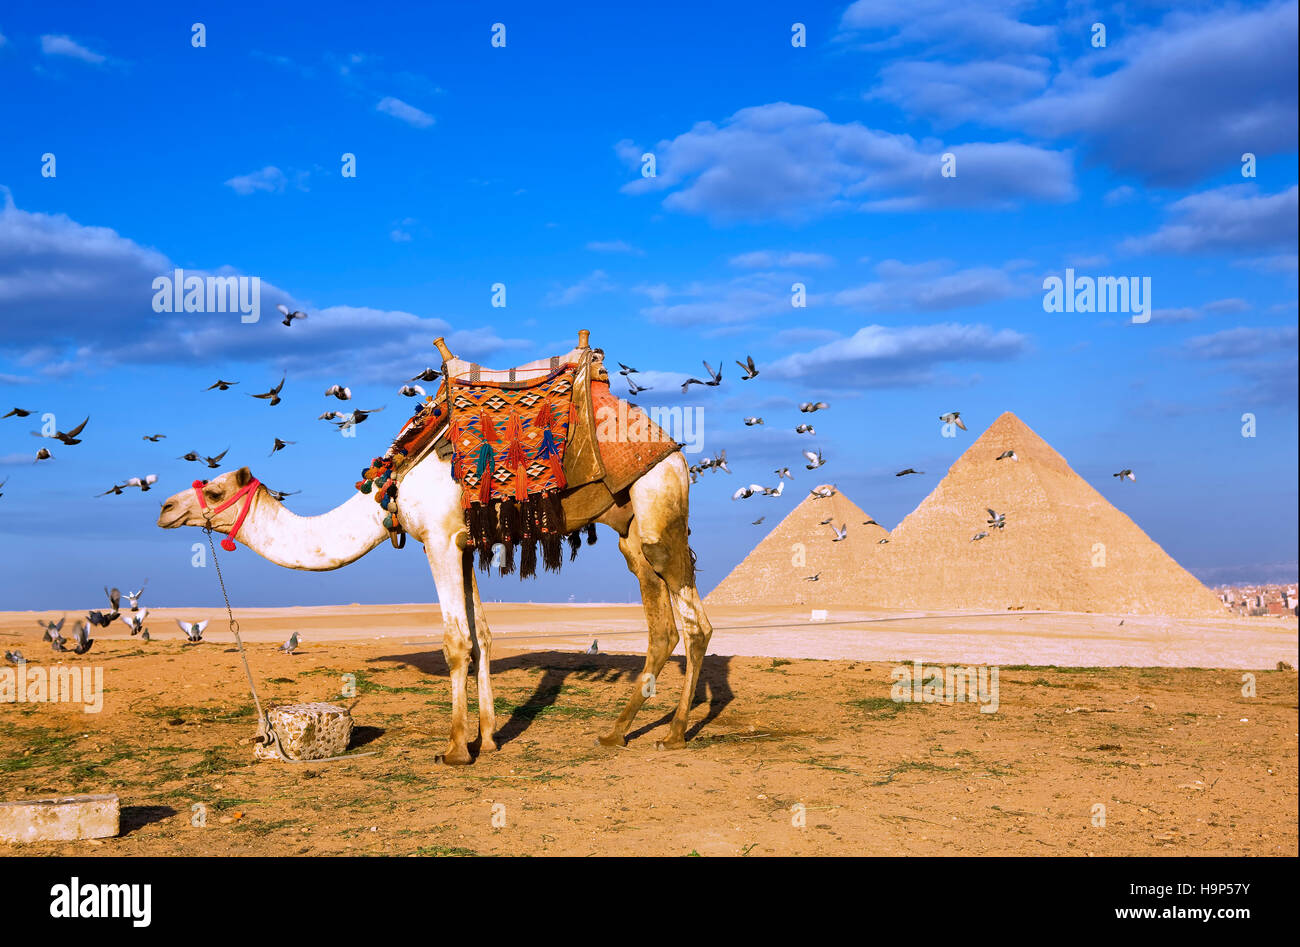 Pyramides de Gizeh, Le Caire, Egypte Photo Stock